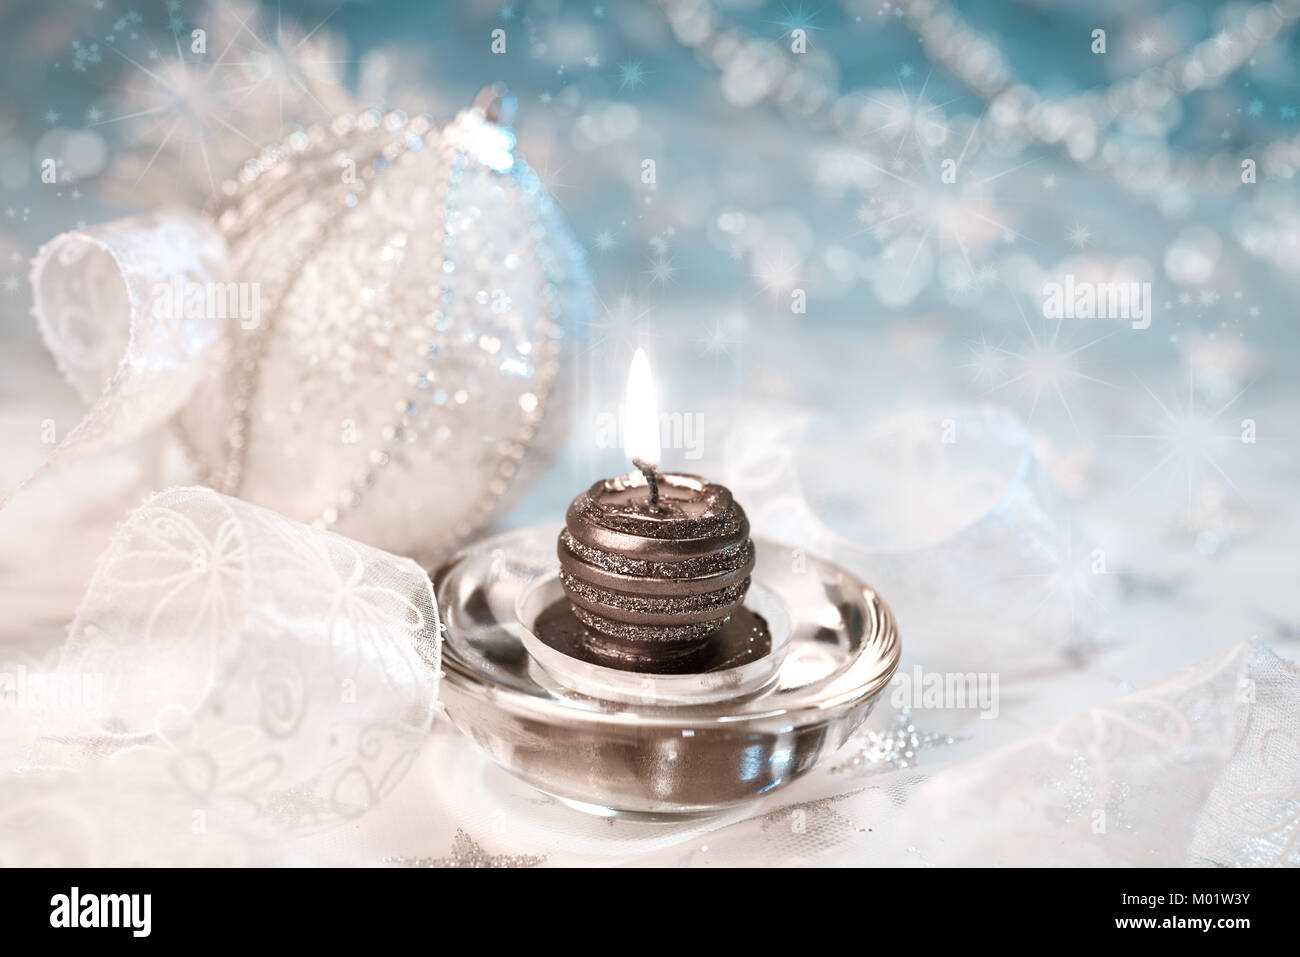 Xmas candle among white and silver decorations Stock Photo